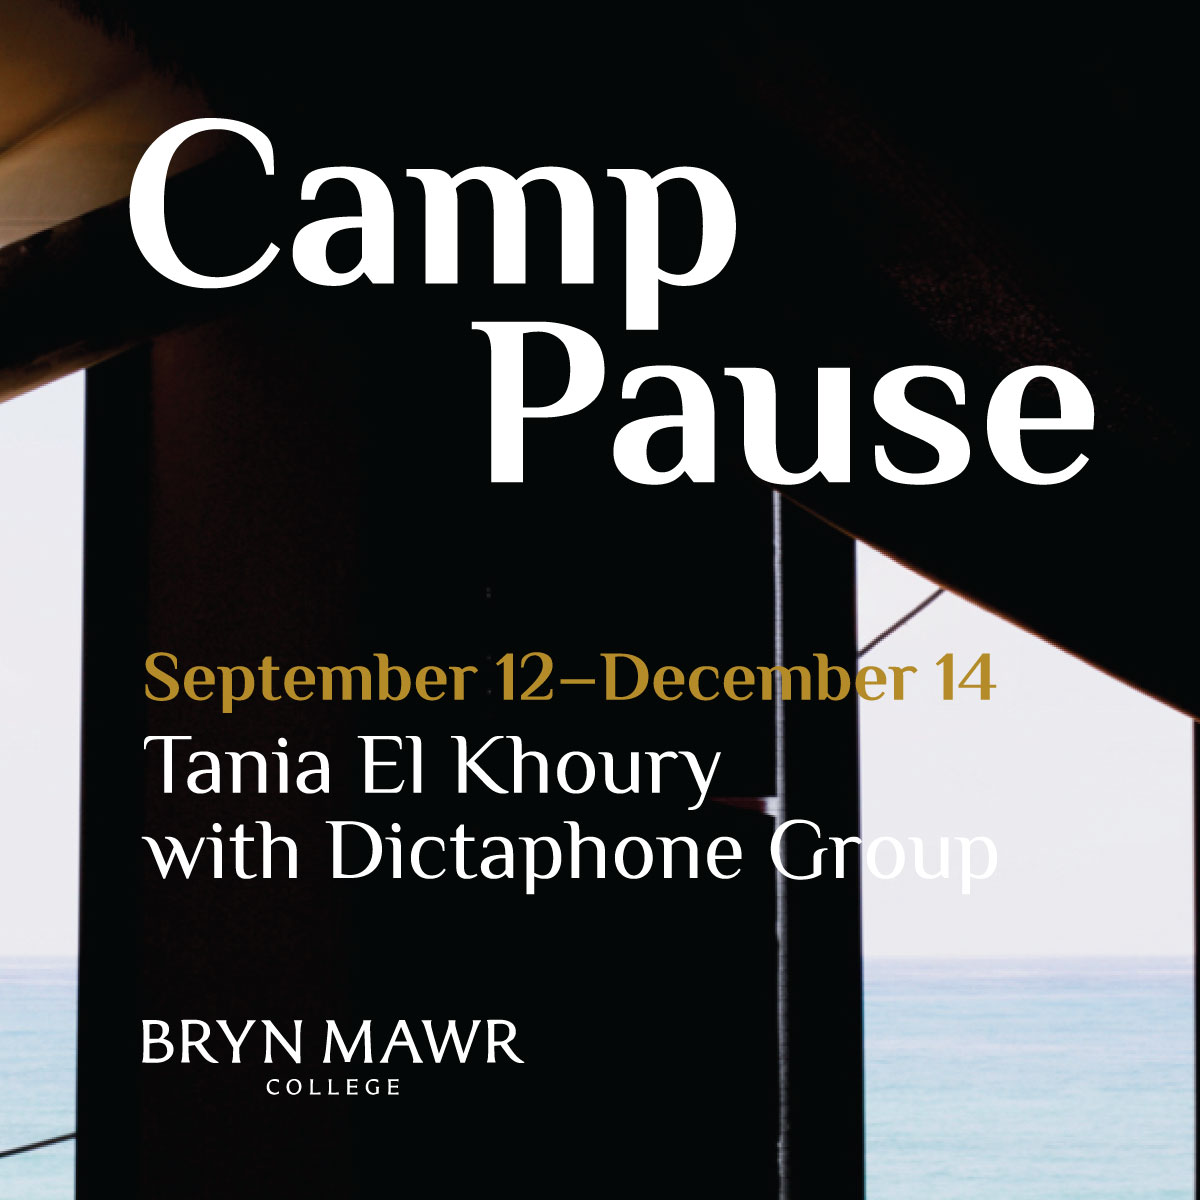 OPENING: Camp Pause by Tania El Khoury and Dictaphone Group in Rare Book Room